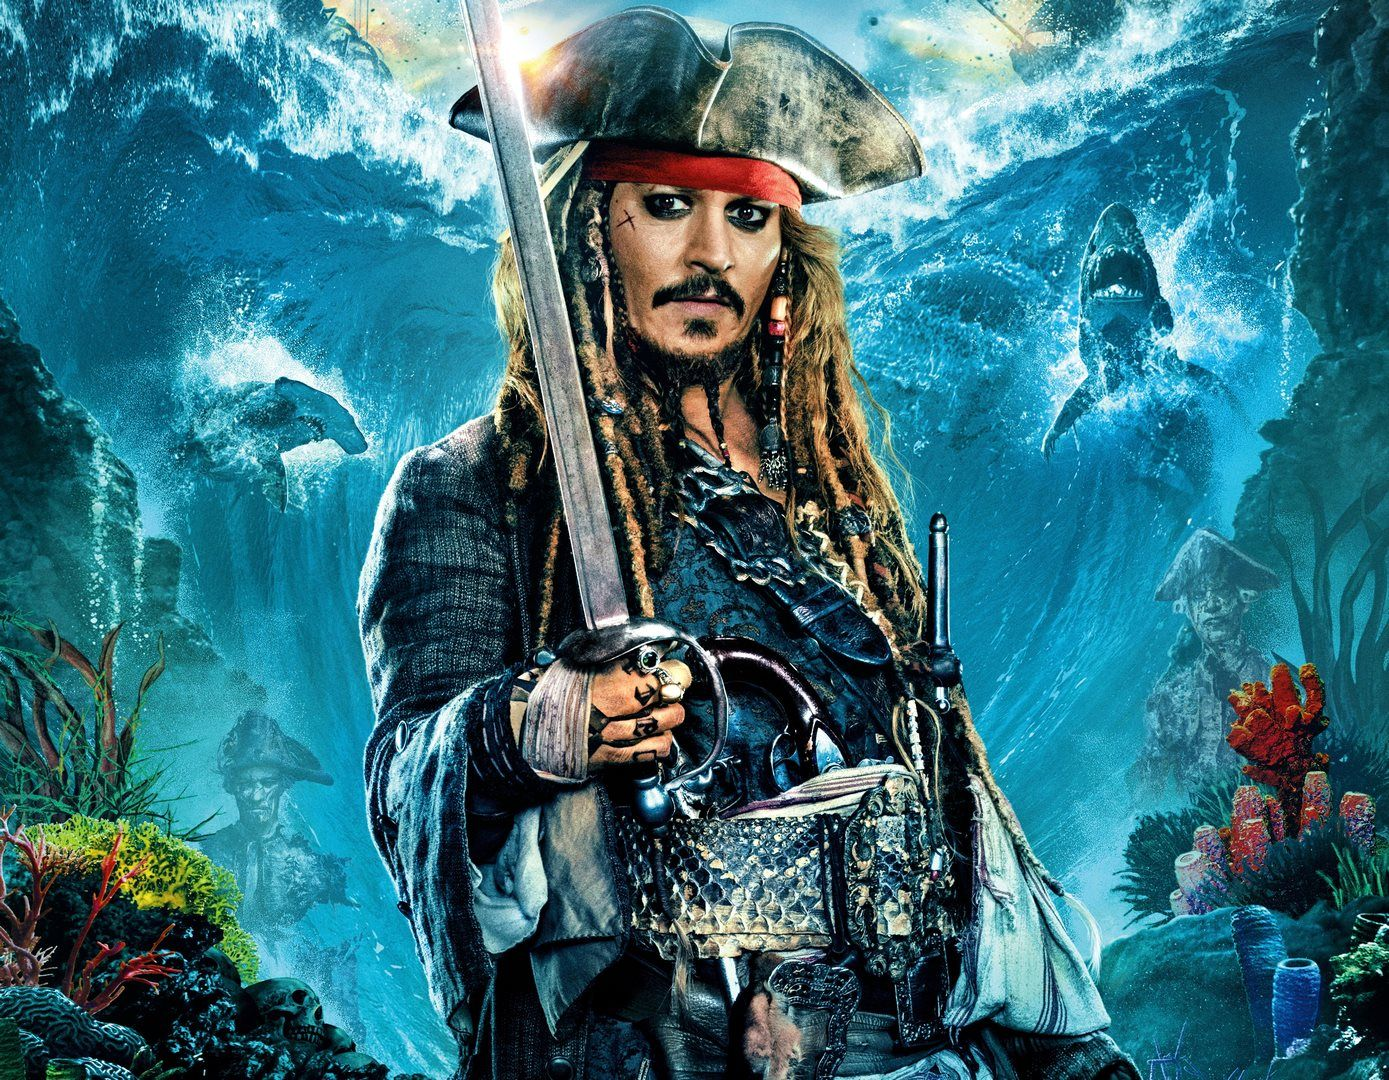 Jack Sparrow In Pirates Of The Caribbean Dead Men Tell No Tales Wide Go Wallpapers Wallpapers Backgro Jack Sparrow Wallpaper Jack Sparrow Jack Sparrow Movies Ultra hd hd 1080p jack sparrow wallpaper